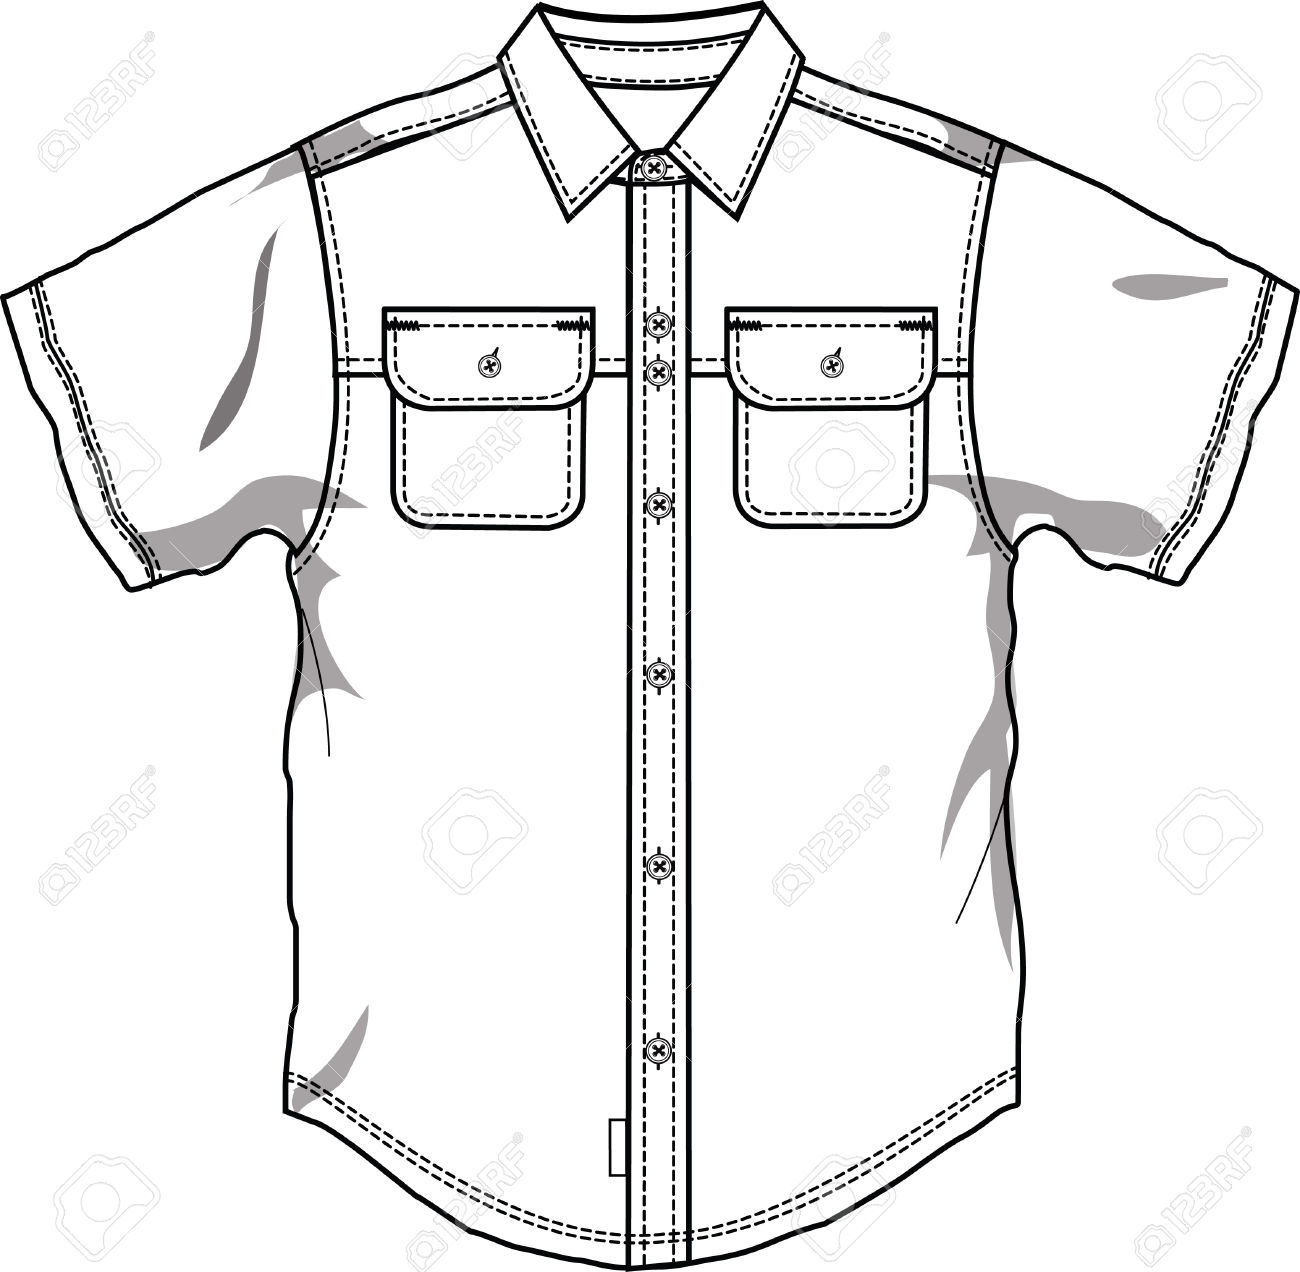 Shirt drawing at getdrawings. Button clipart outline